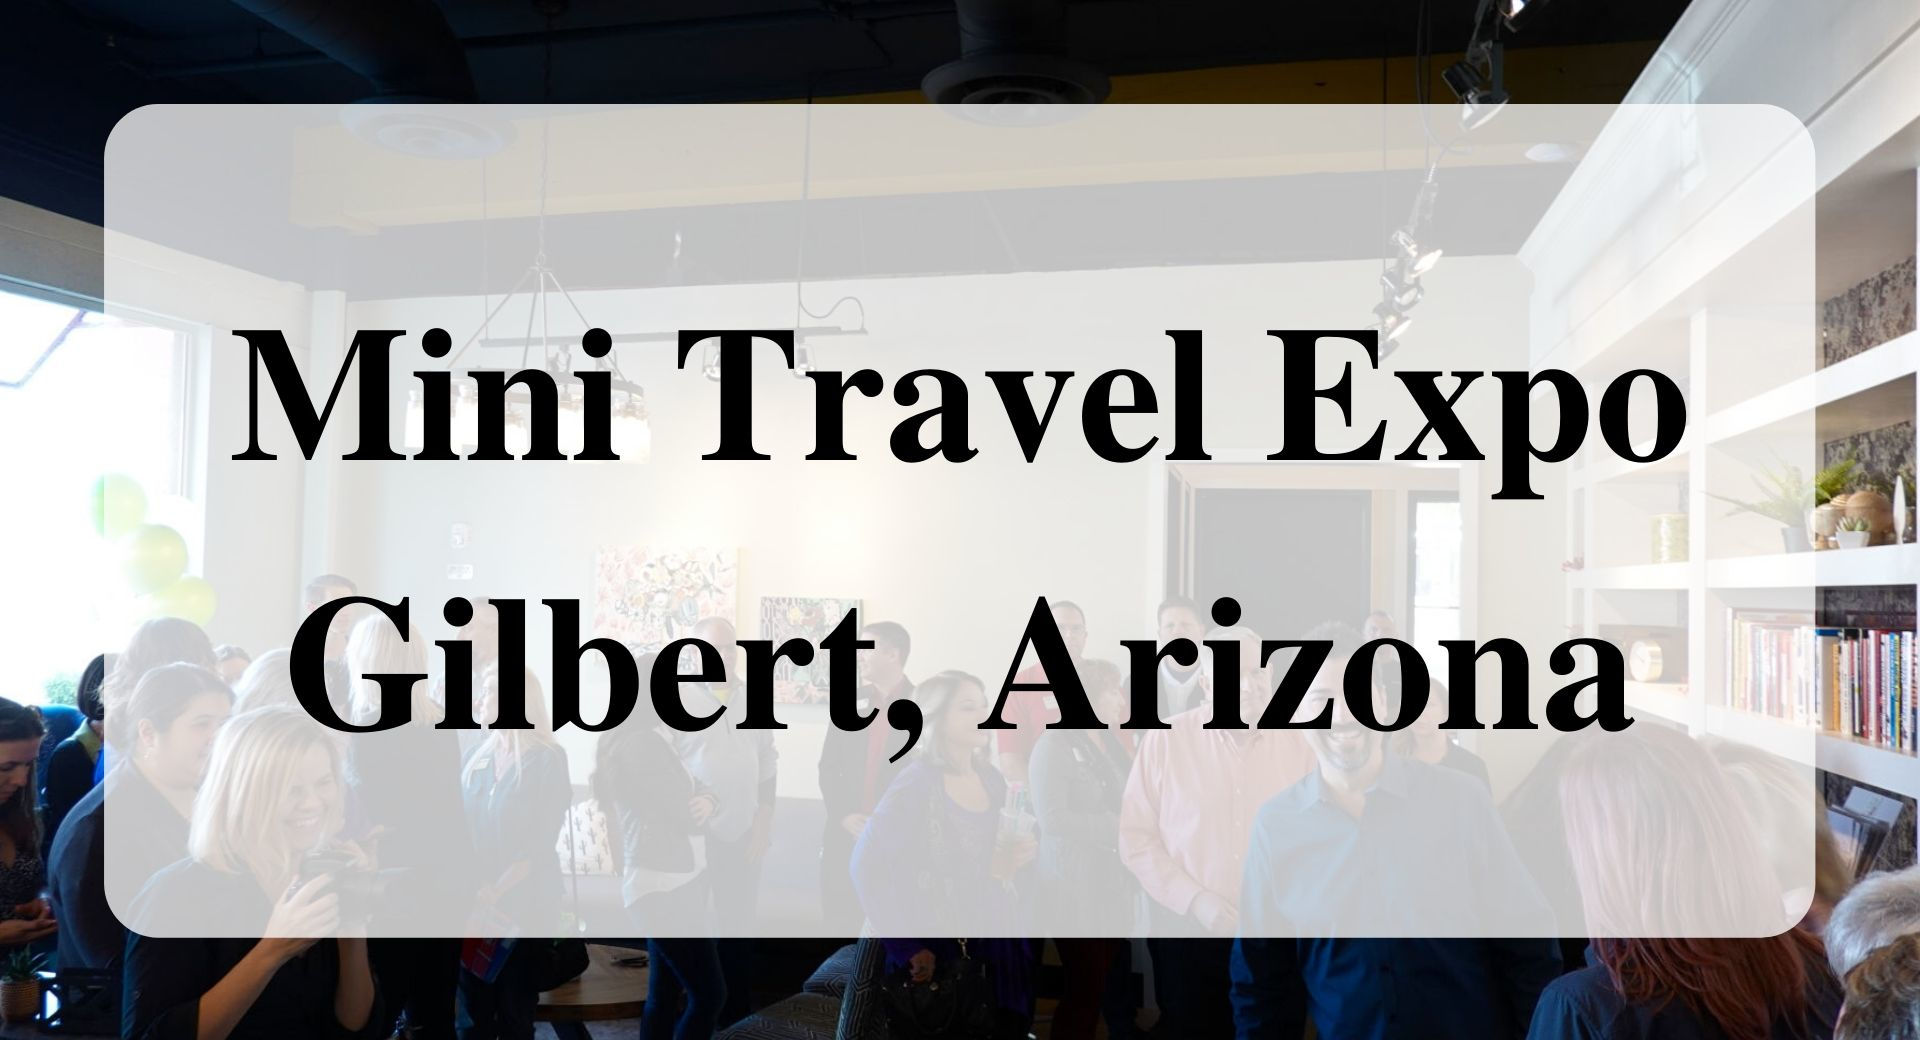 Mini Travel Expo Forever sabbatical